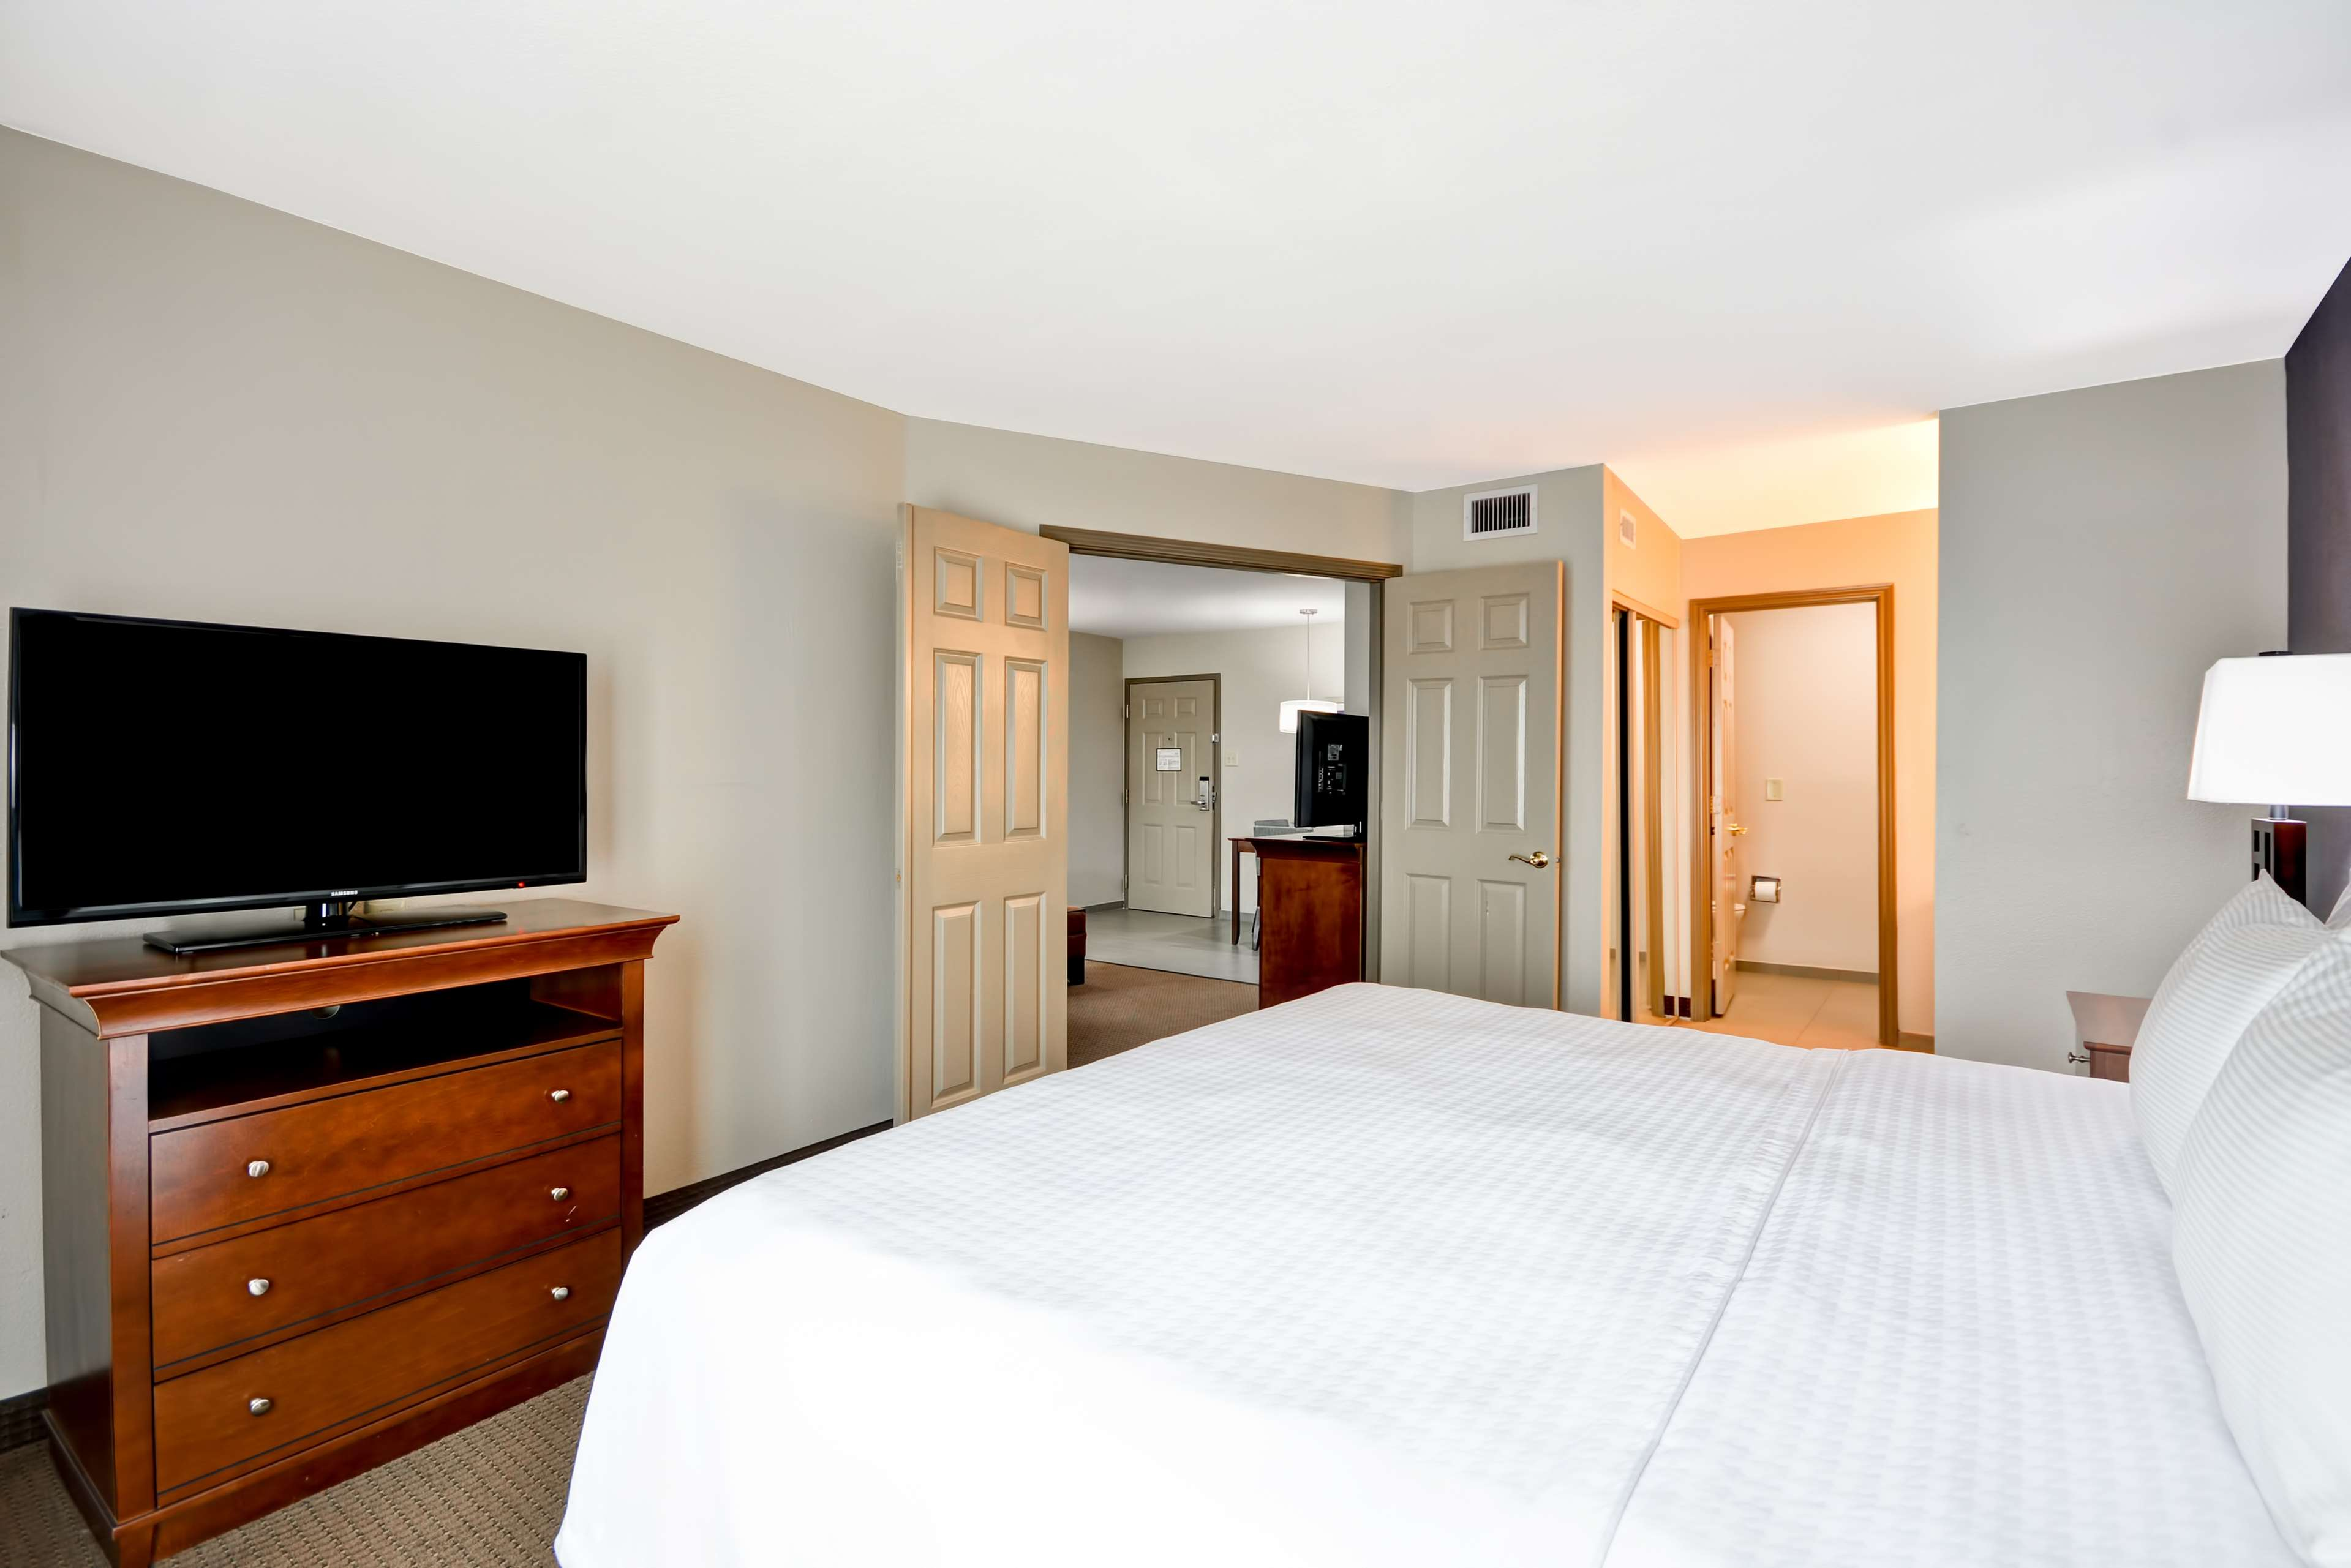 Homewood Suites by Hilton Dallas-Lewisville image 38